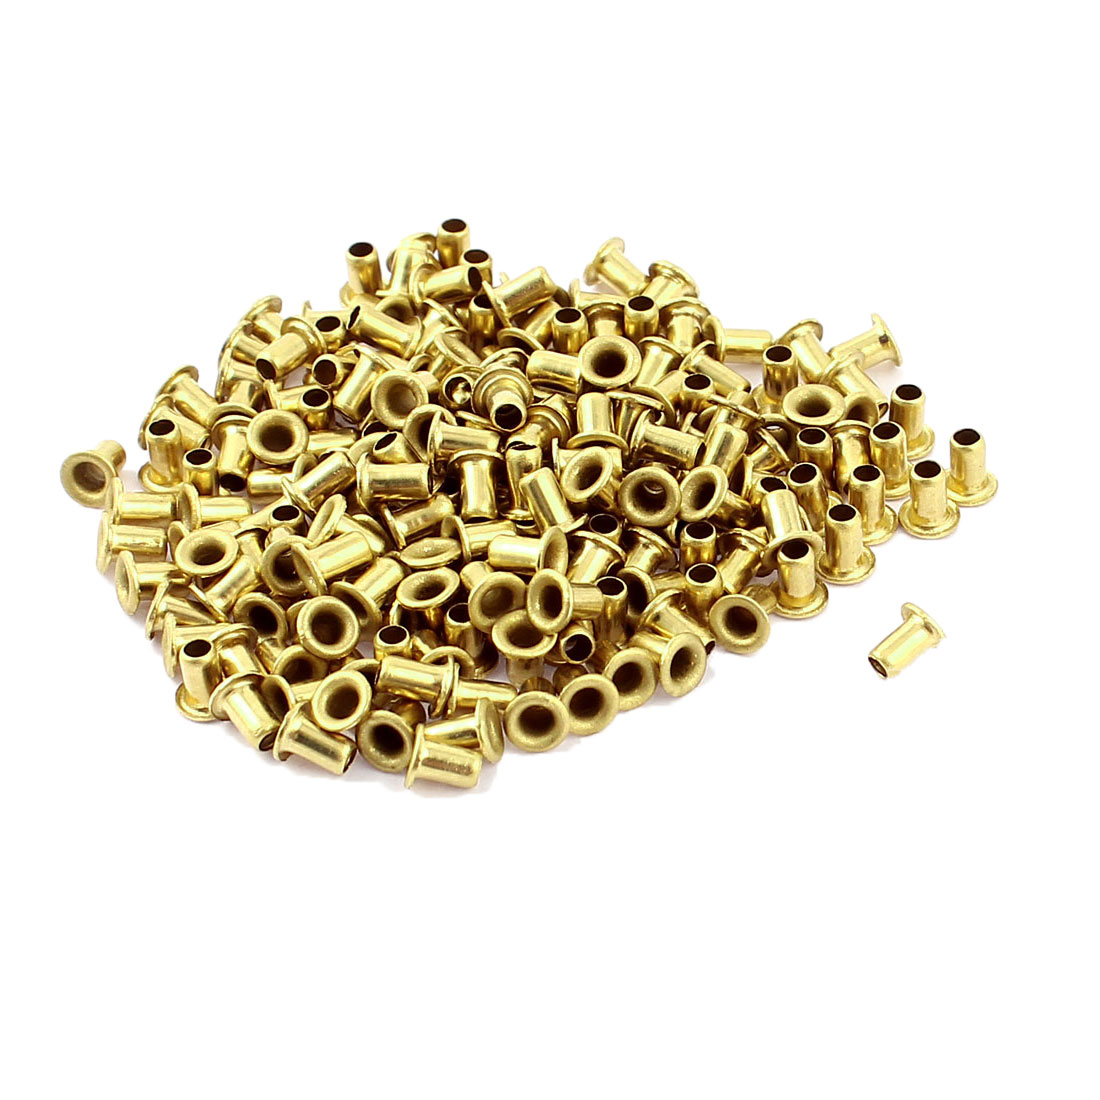 200 Pcs M2.5*4 copper Tone Eyelet Buttonhole rivet Retainer Ring Button Buckle